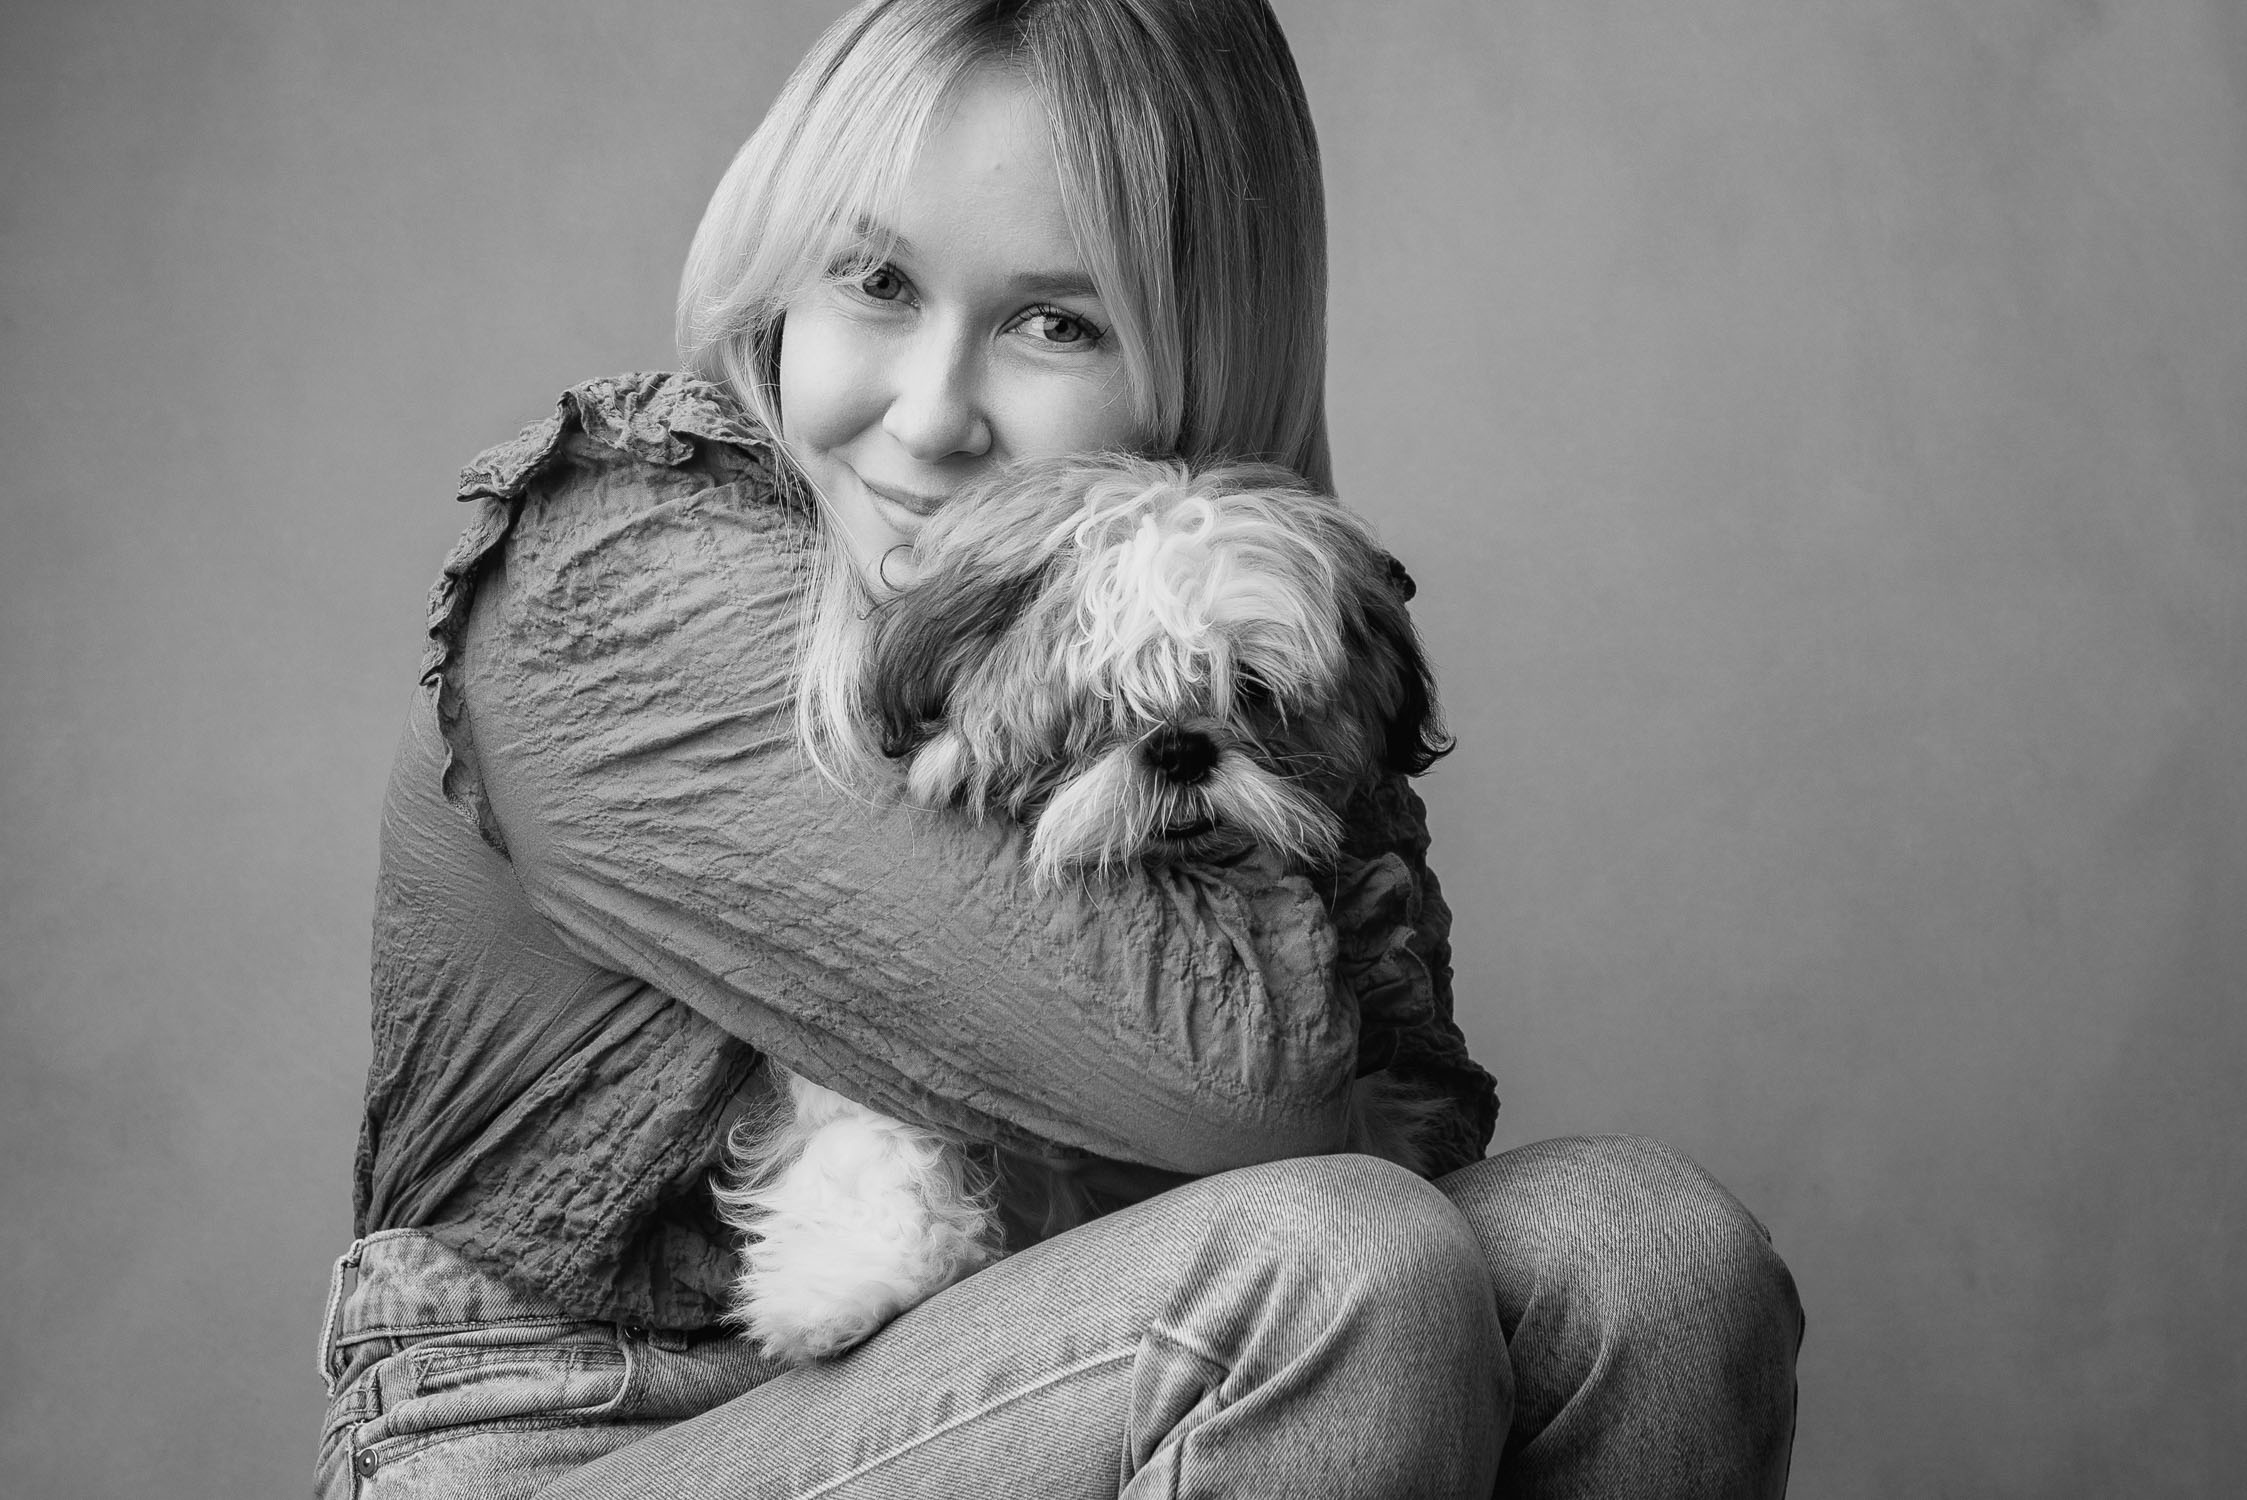 dog and mum by auckland dog photographer siobhan kelly photography